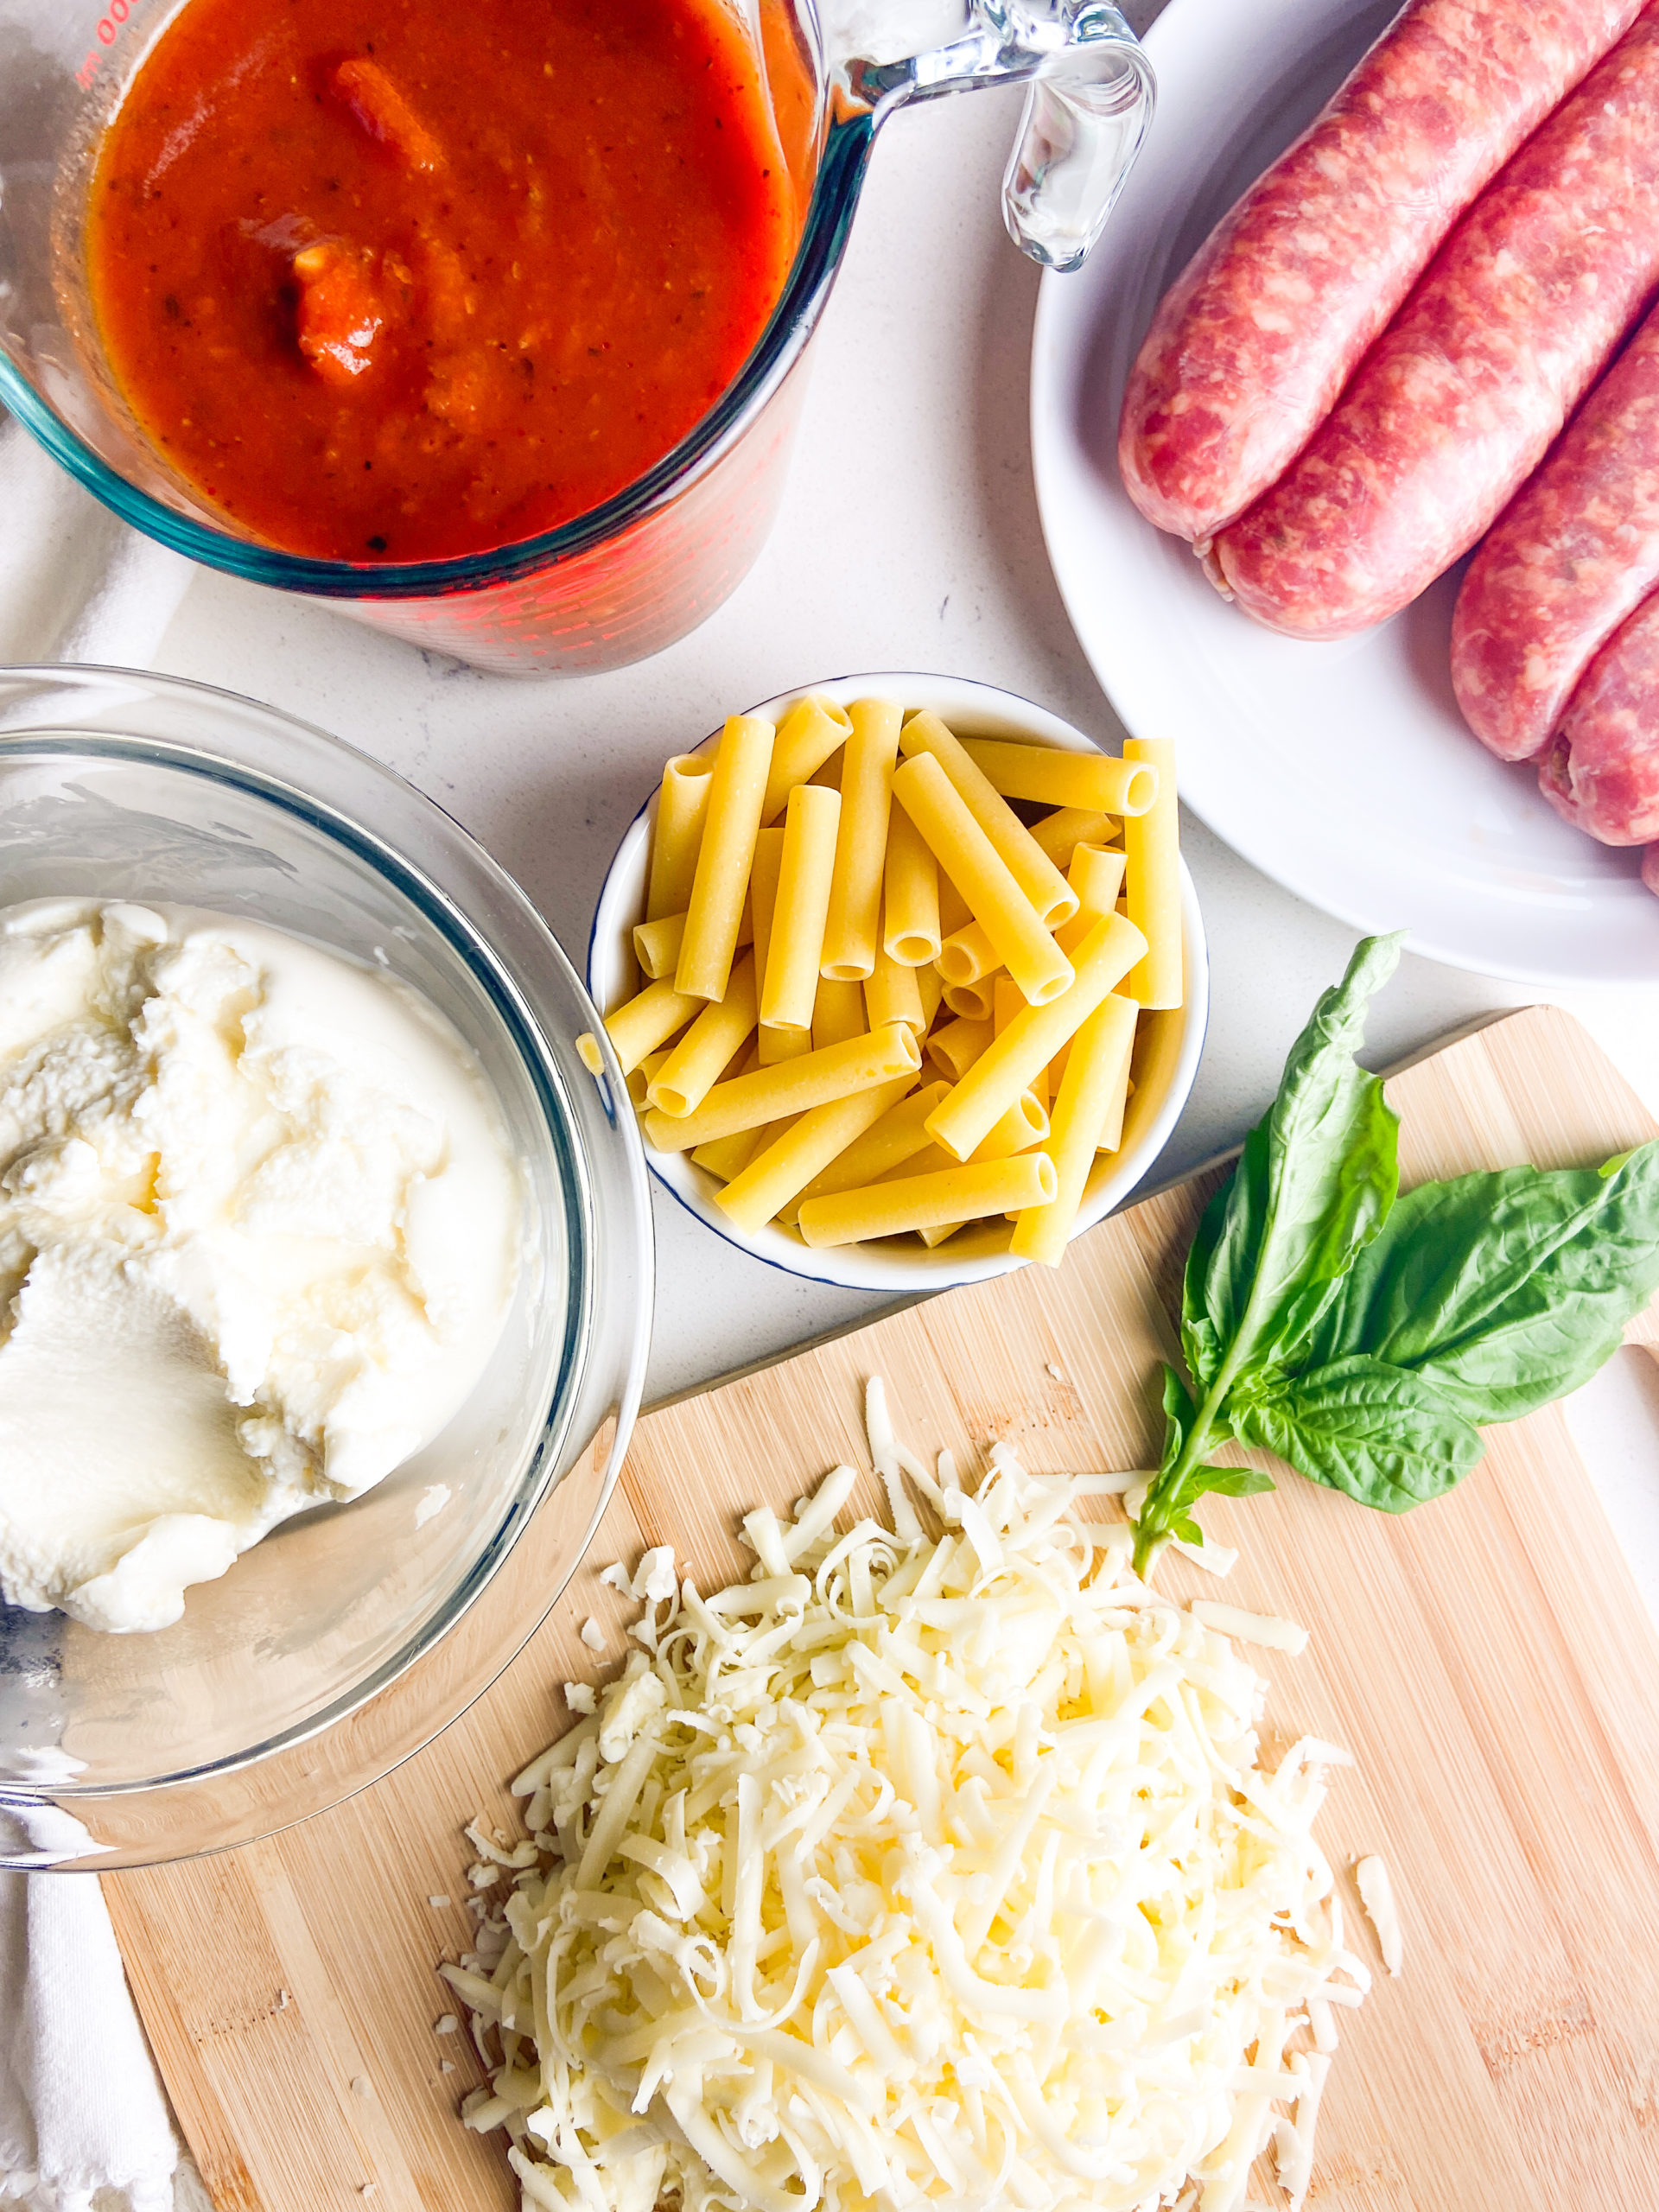 Ingredients for baked ziti with italian sausage.